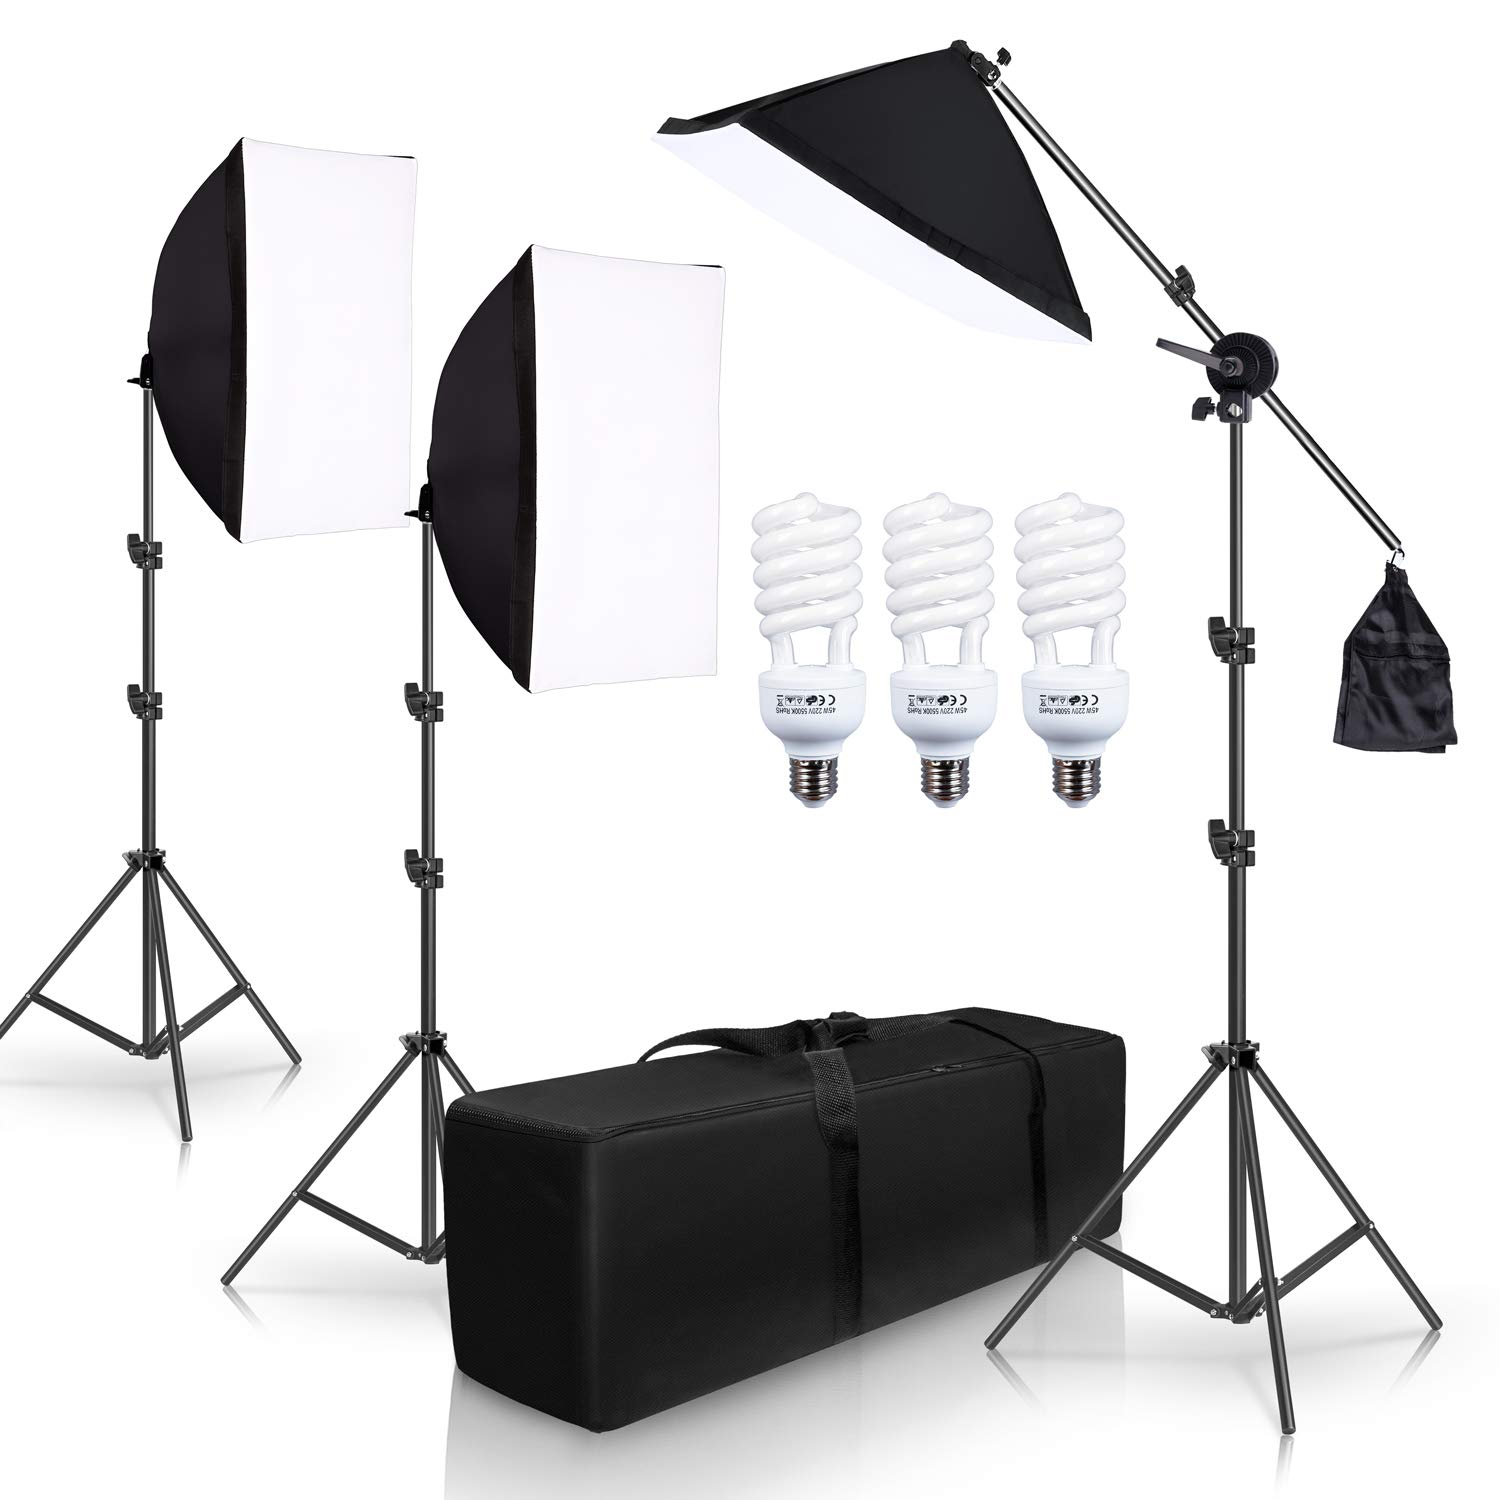 SH Photography Photo Studio Lighting Kit Set Softbox Setup with Light Stand Square Cube Softbox Cantilever Bag softbox with 3 PCS 5500K Daylight Bulbs by SH